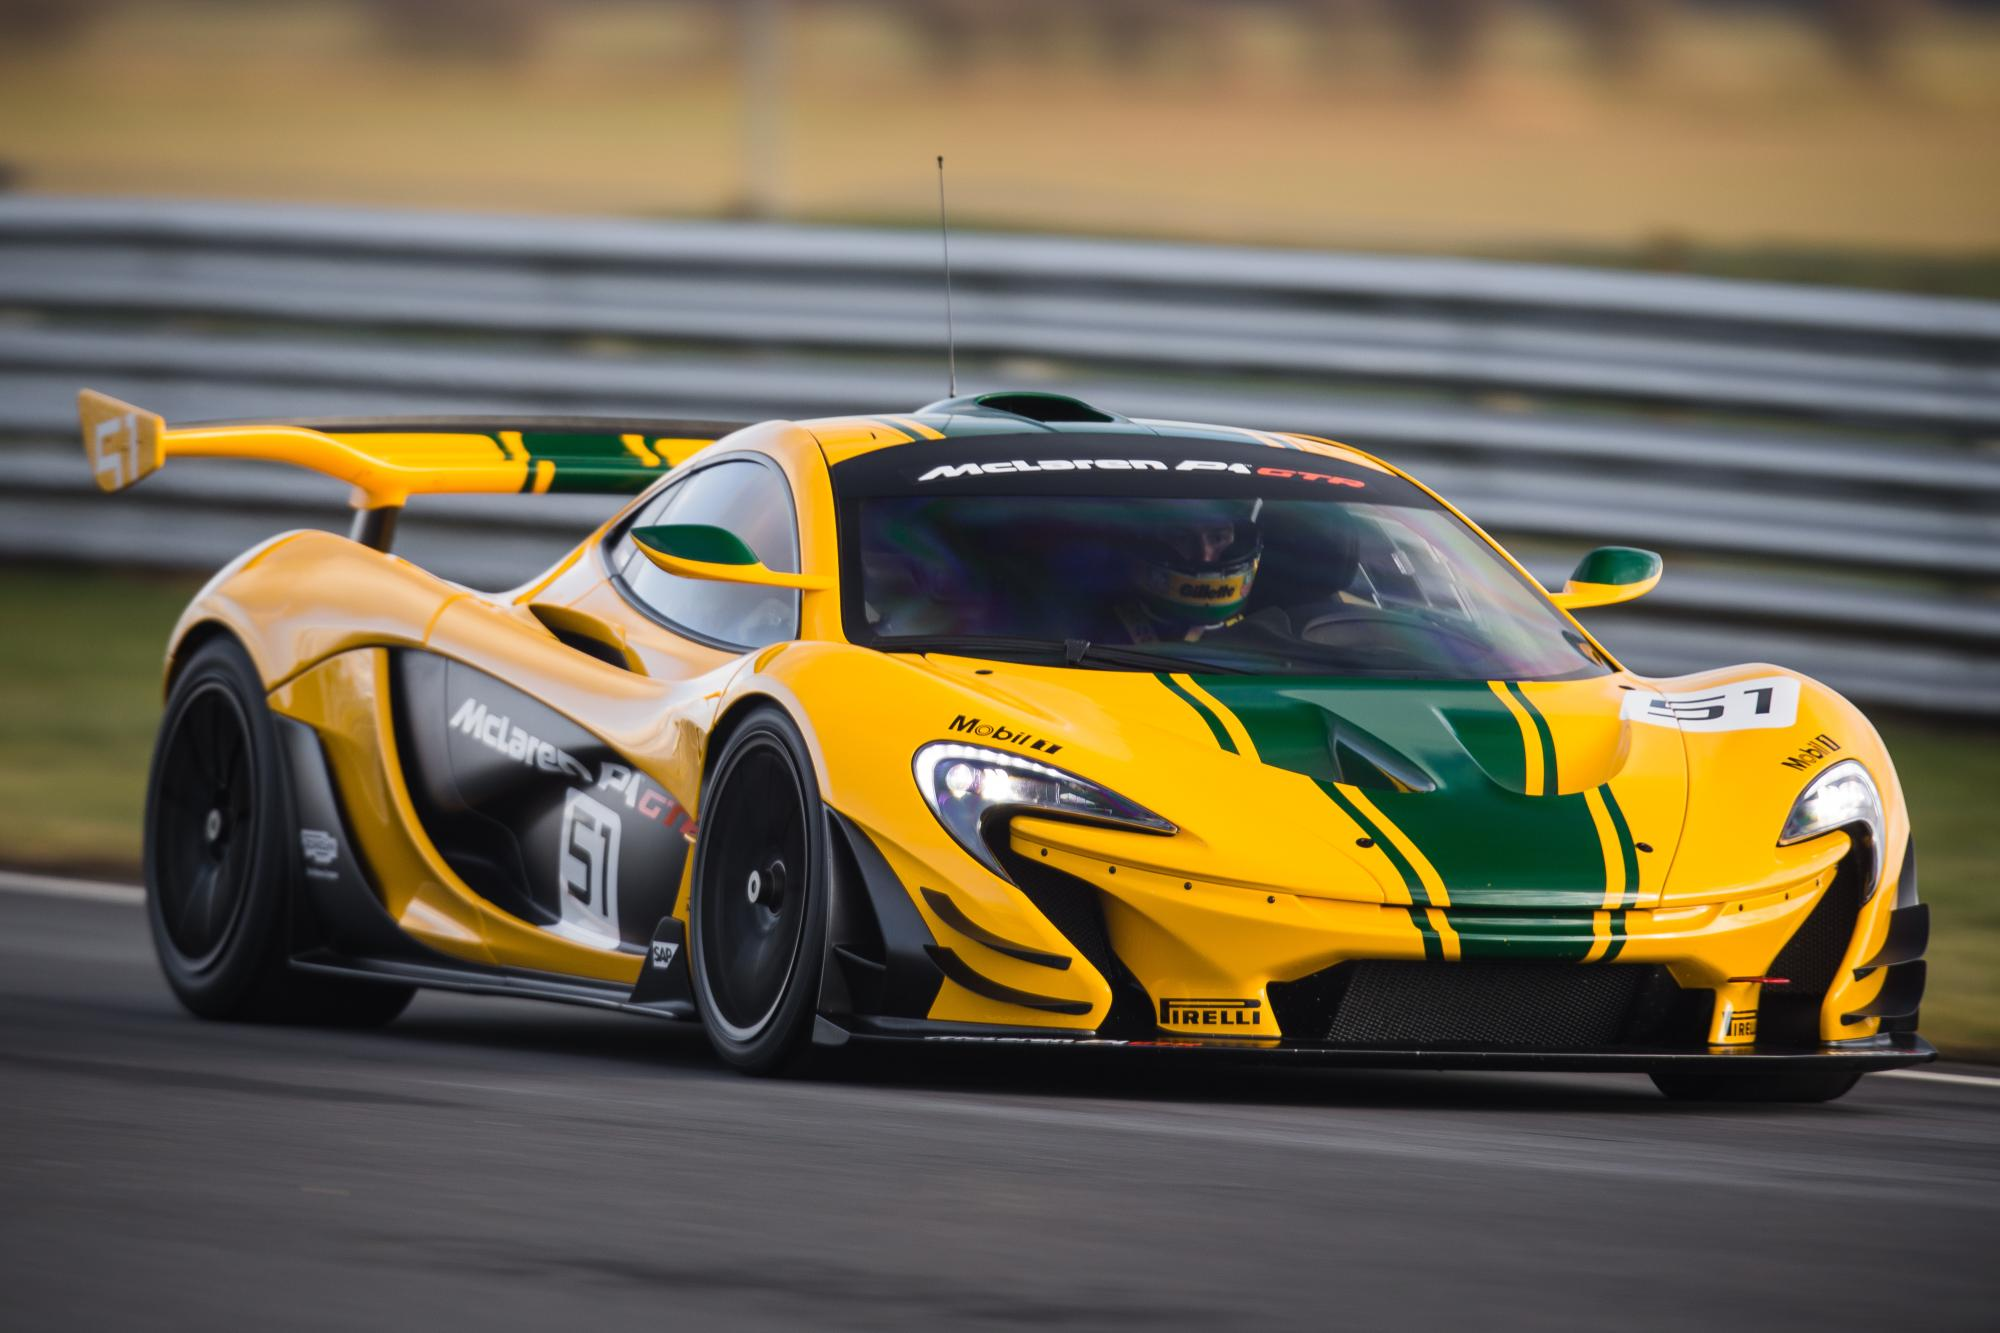 road legal mclaren p1 gtr for sale at 7 2 million in italy gtspirit. Black Bedroom Furniture Sets. Home Design Ideas